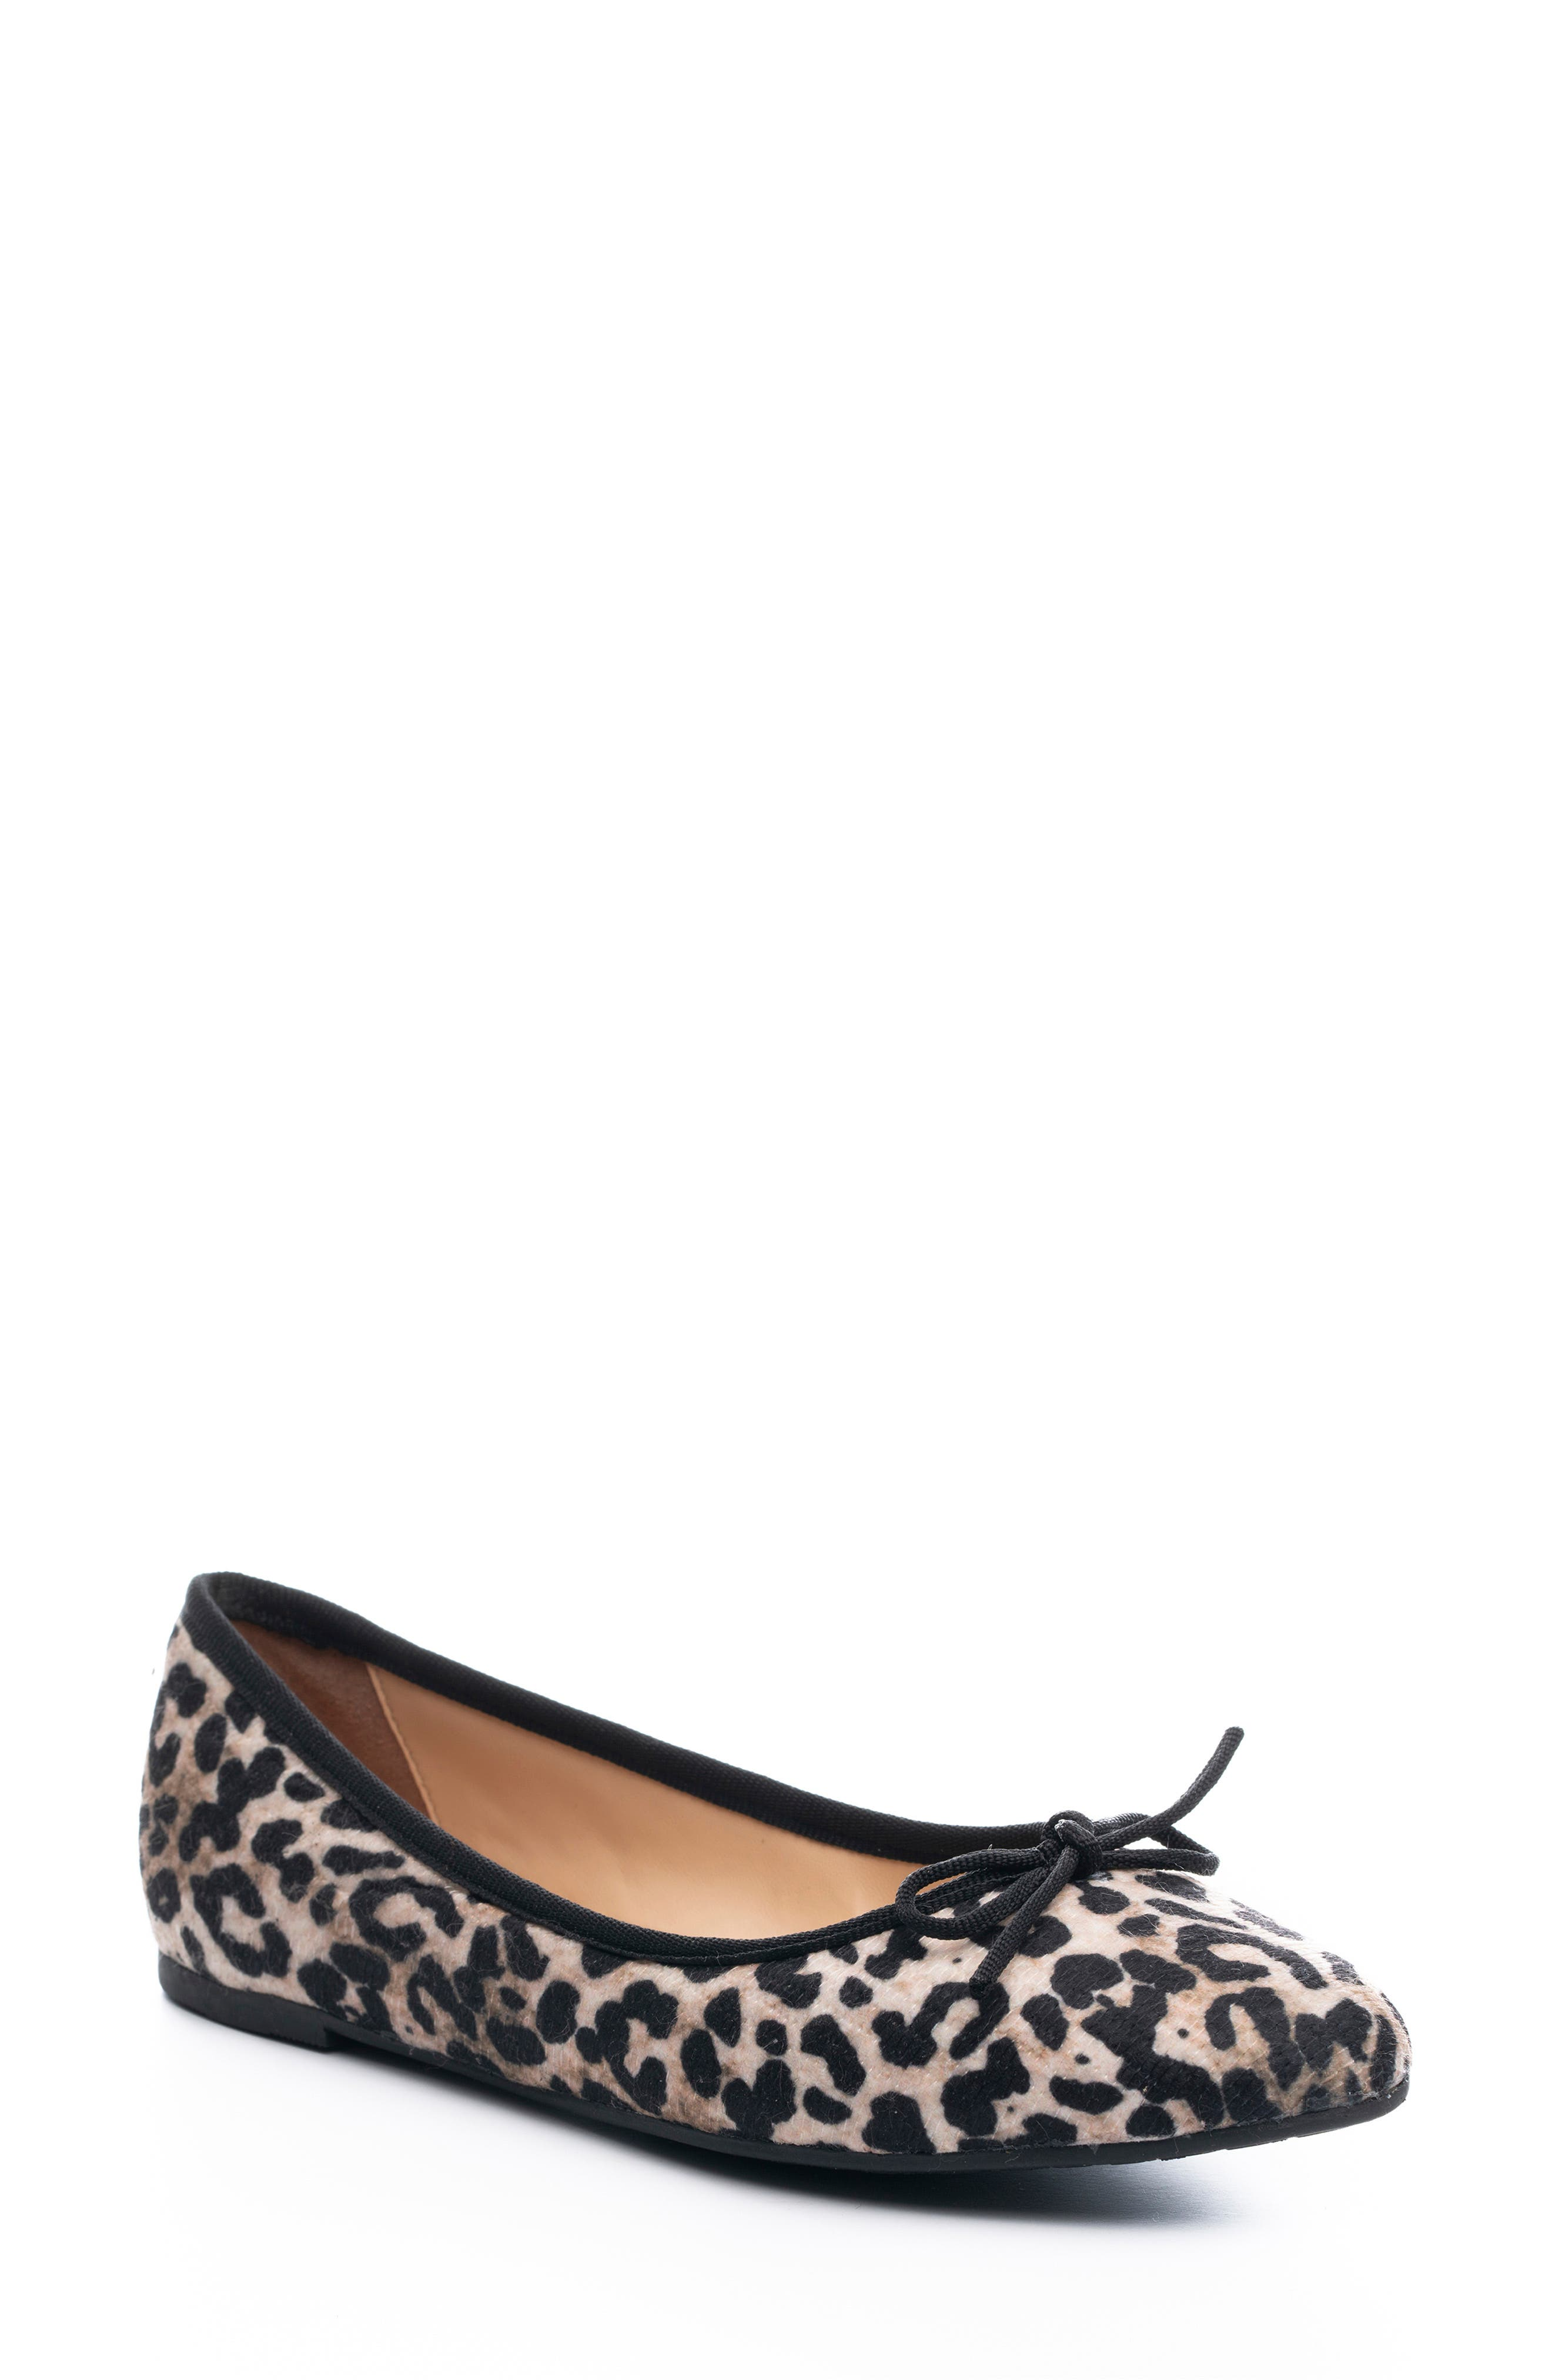 Cheery Houndstooth Flat